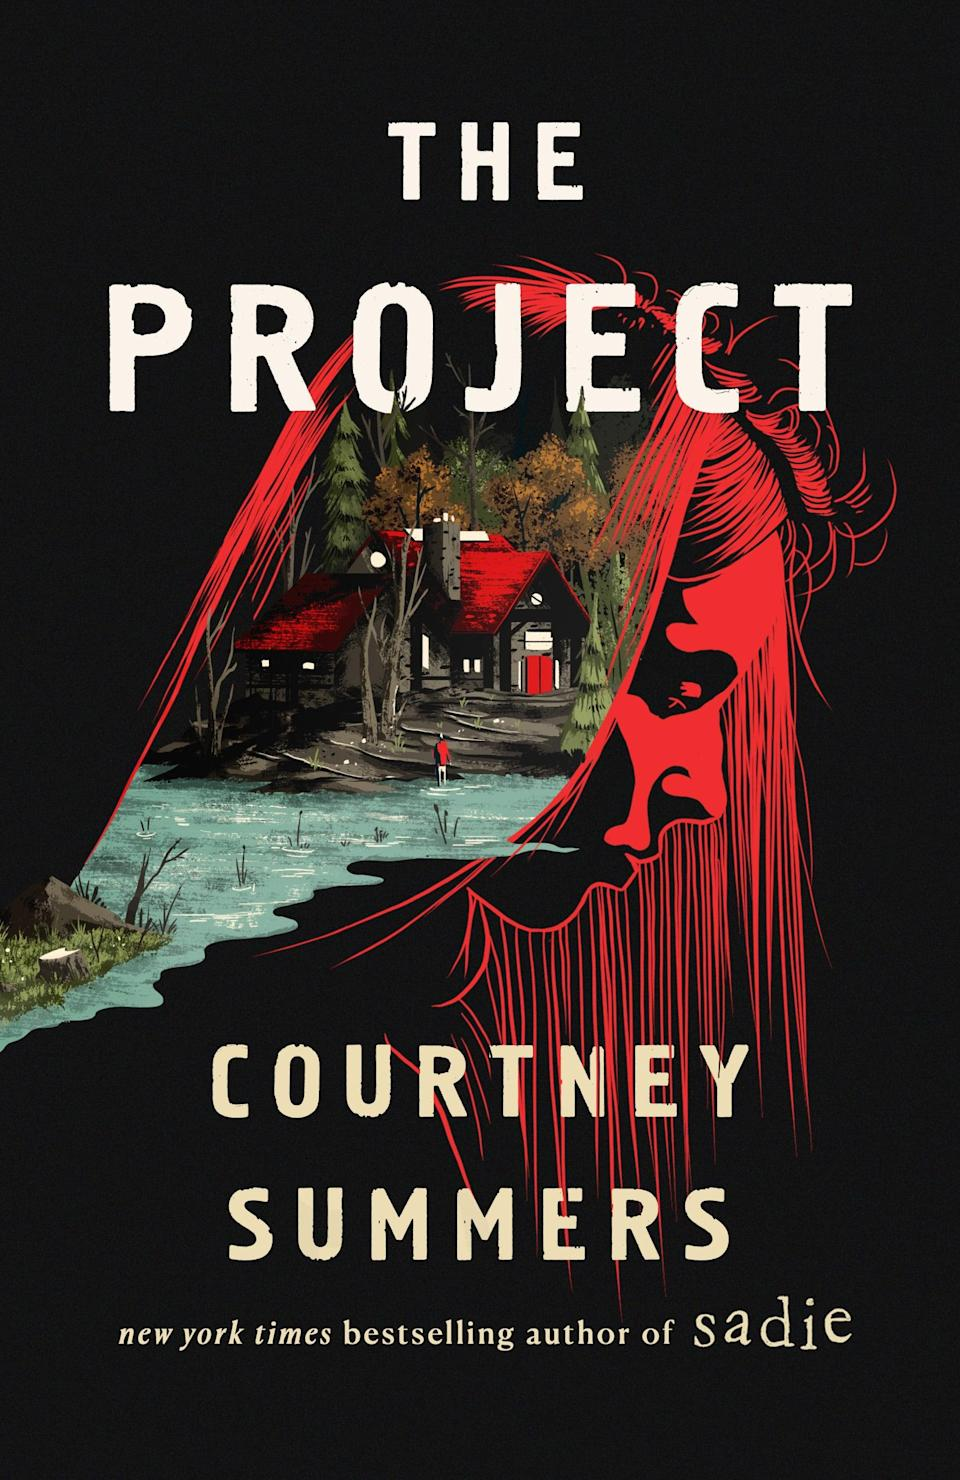 <p>Courtney Summers, the acclaimed author of <strong>Sadie</strong>, is back with another twist-filled thriller. <span><strong>The Project</strong></span> follows Lo Denham, a journalist who has devoted the past six years of her life to uncovering the truth about the cult her older sister is embroiled in. But when she finally has a real lead about the cult's corruption, Lo has no choice but to face down the charismatic leader who has so many people under his sway.</p> <p><em>Out Feb. 2</em></p>